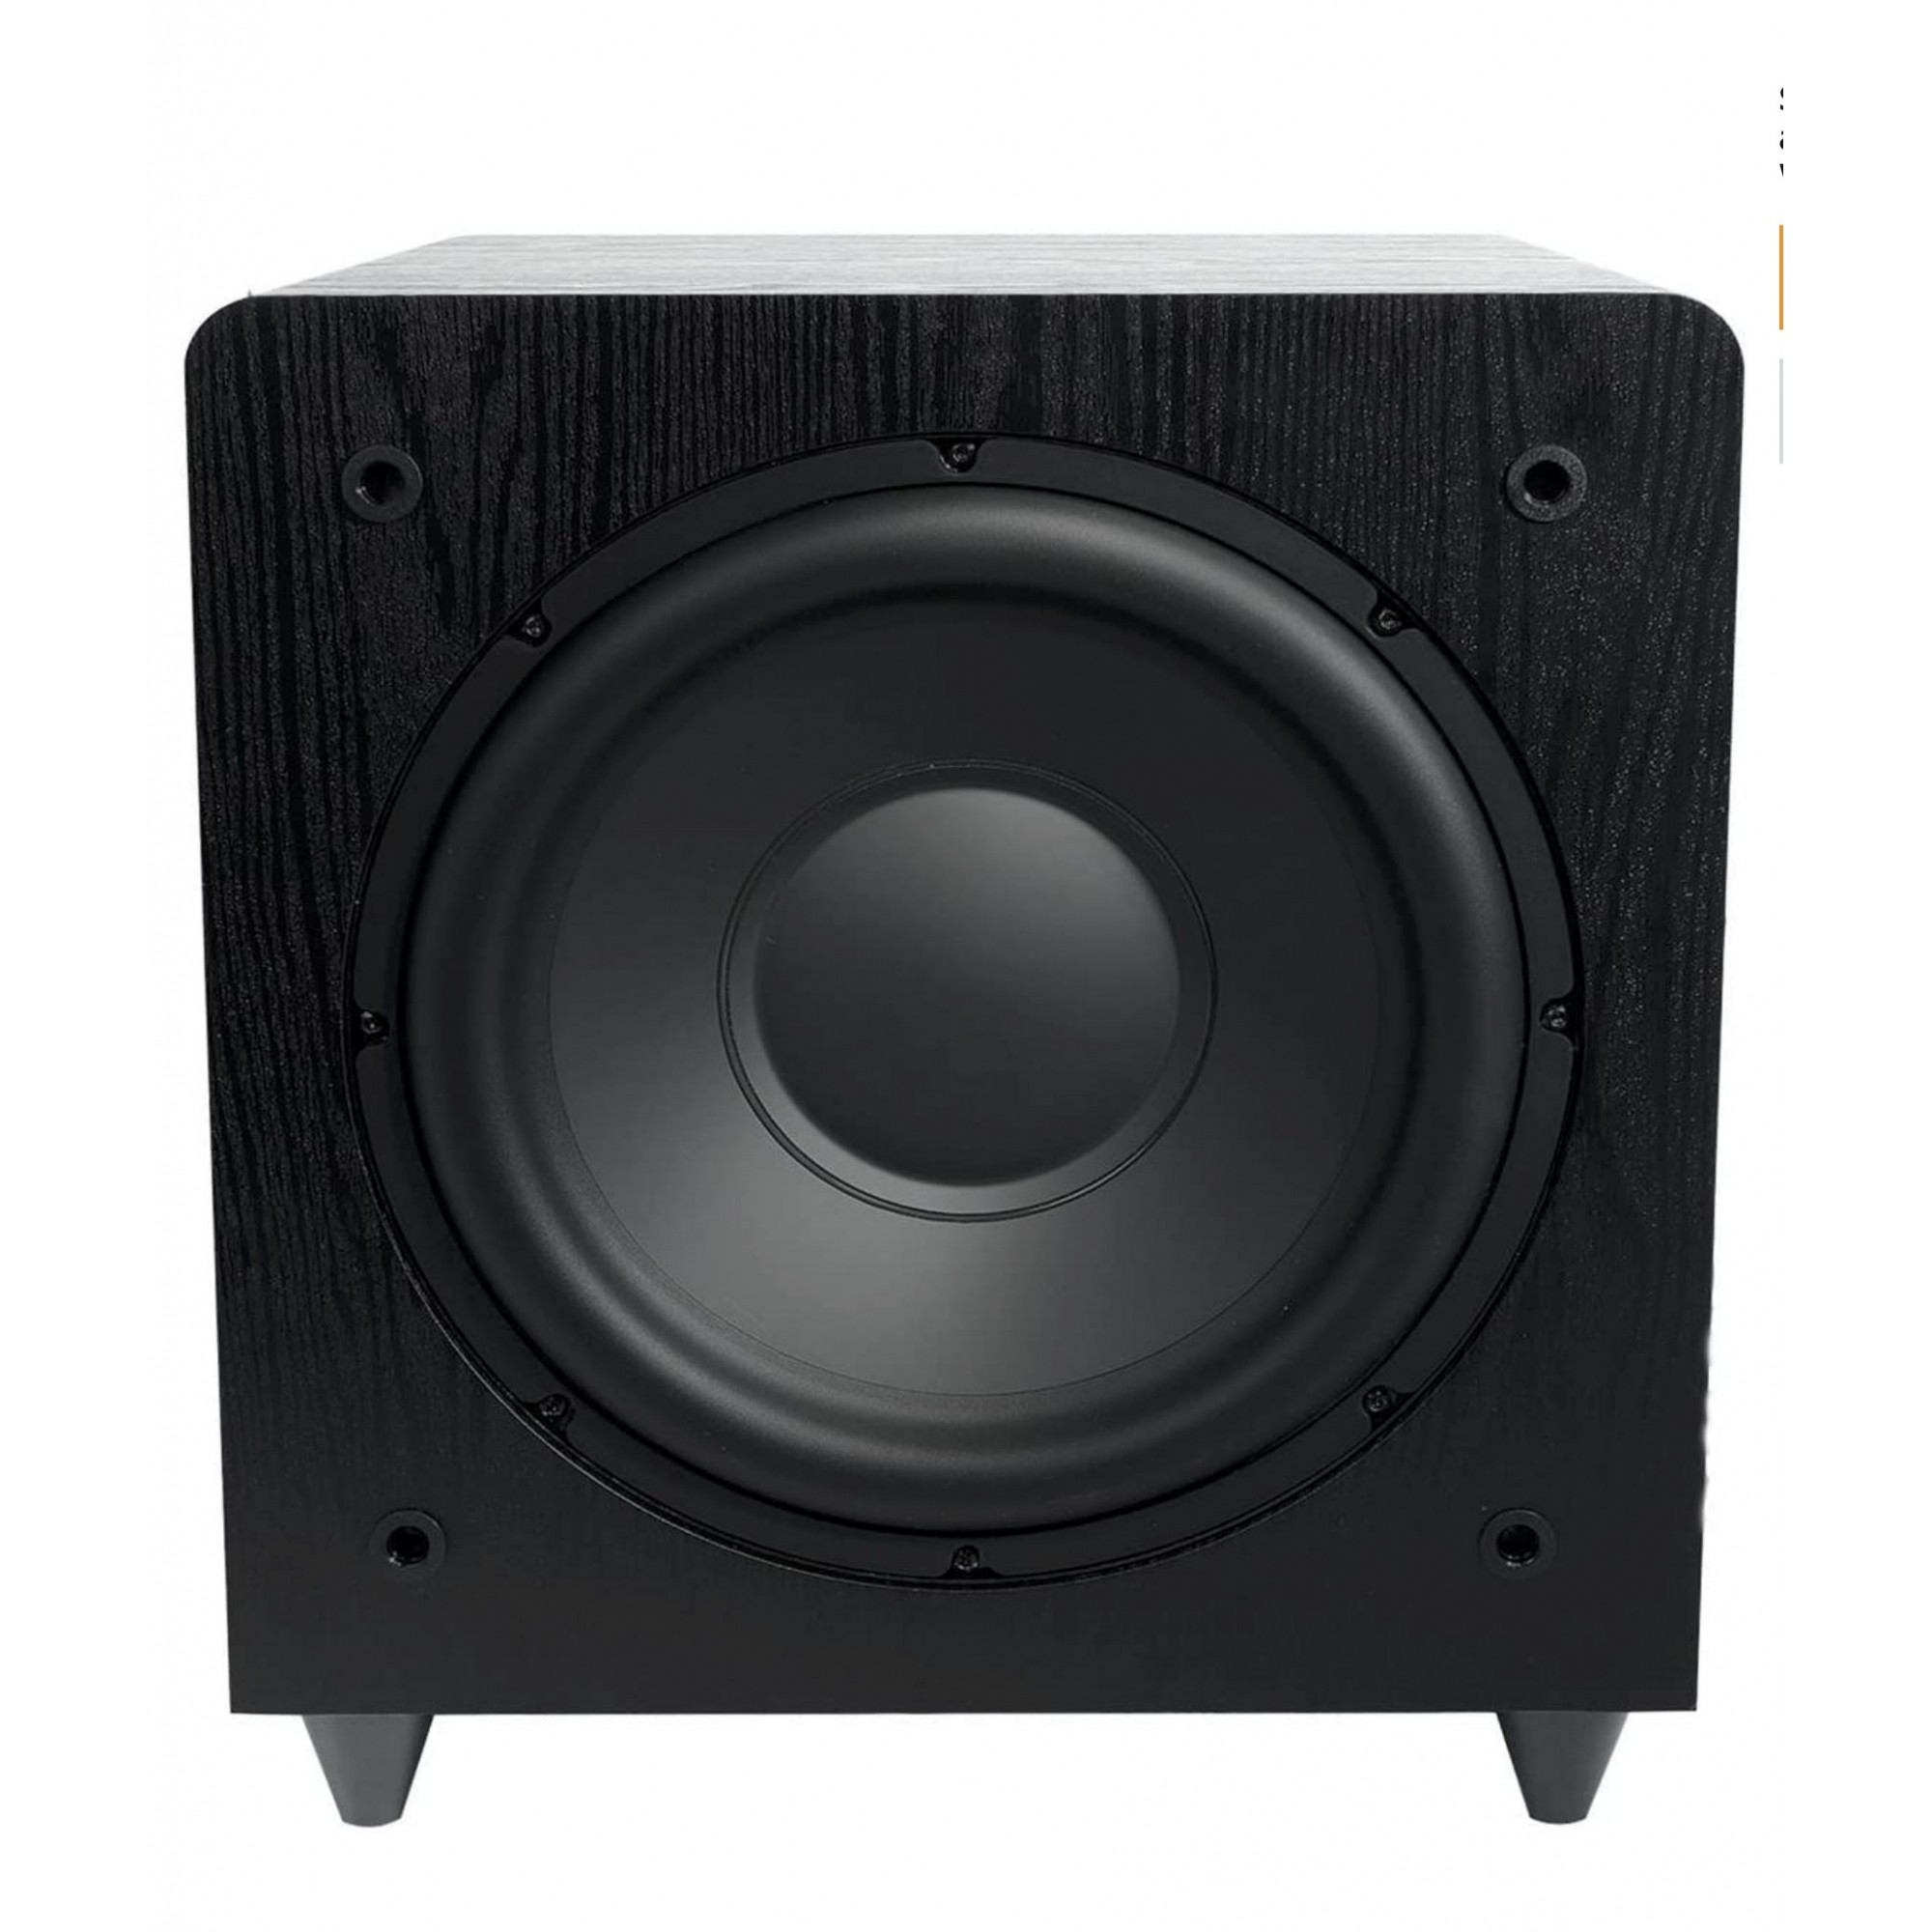 Subwoofer Sunfire Sds 12 300W RMS 2 Woofer